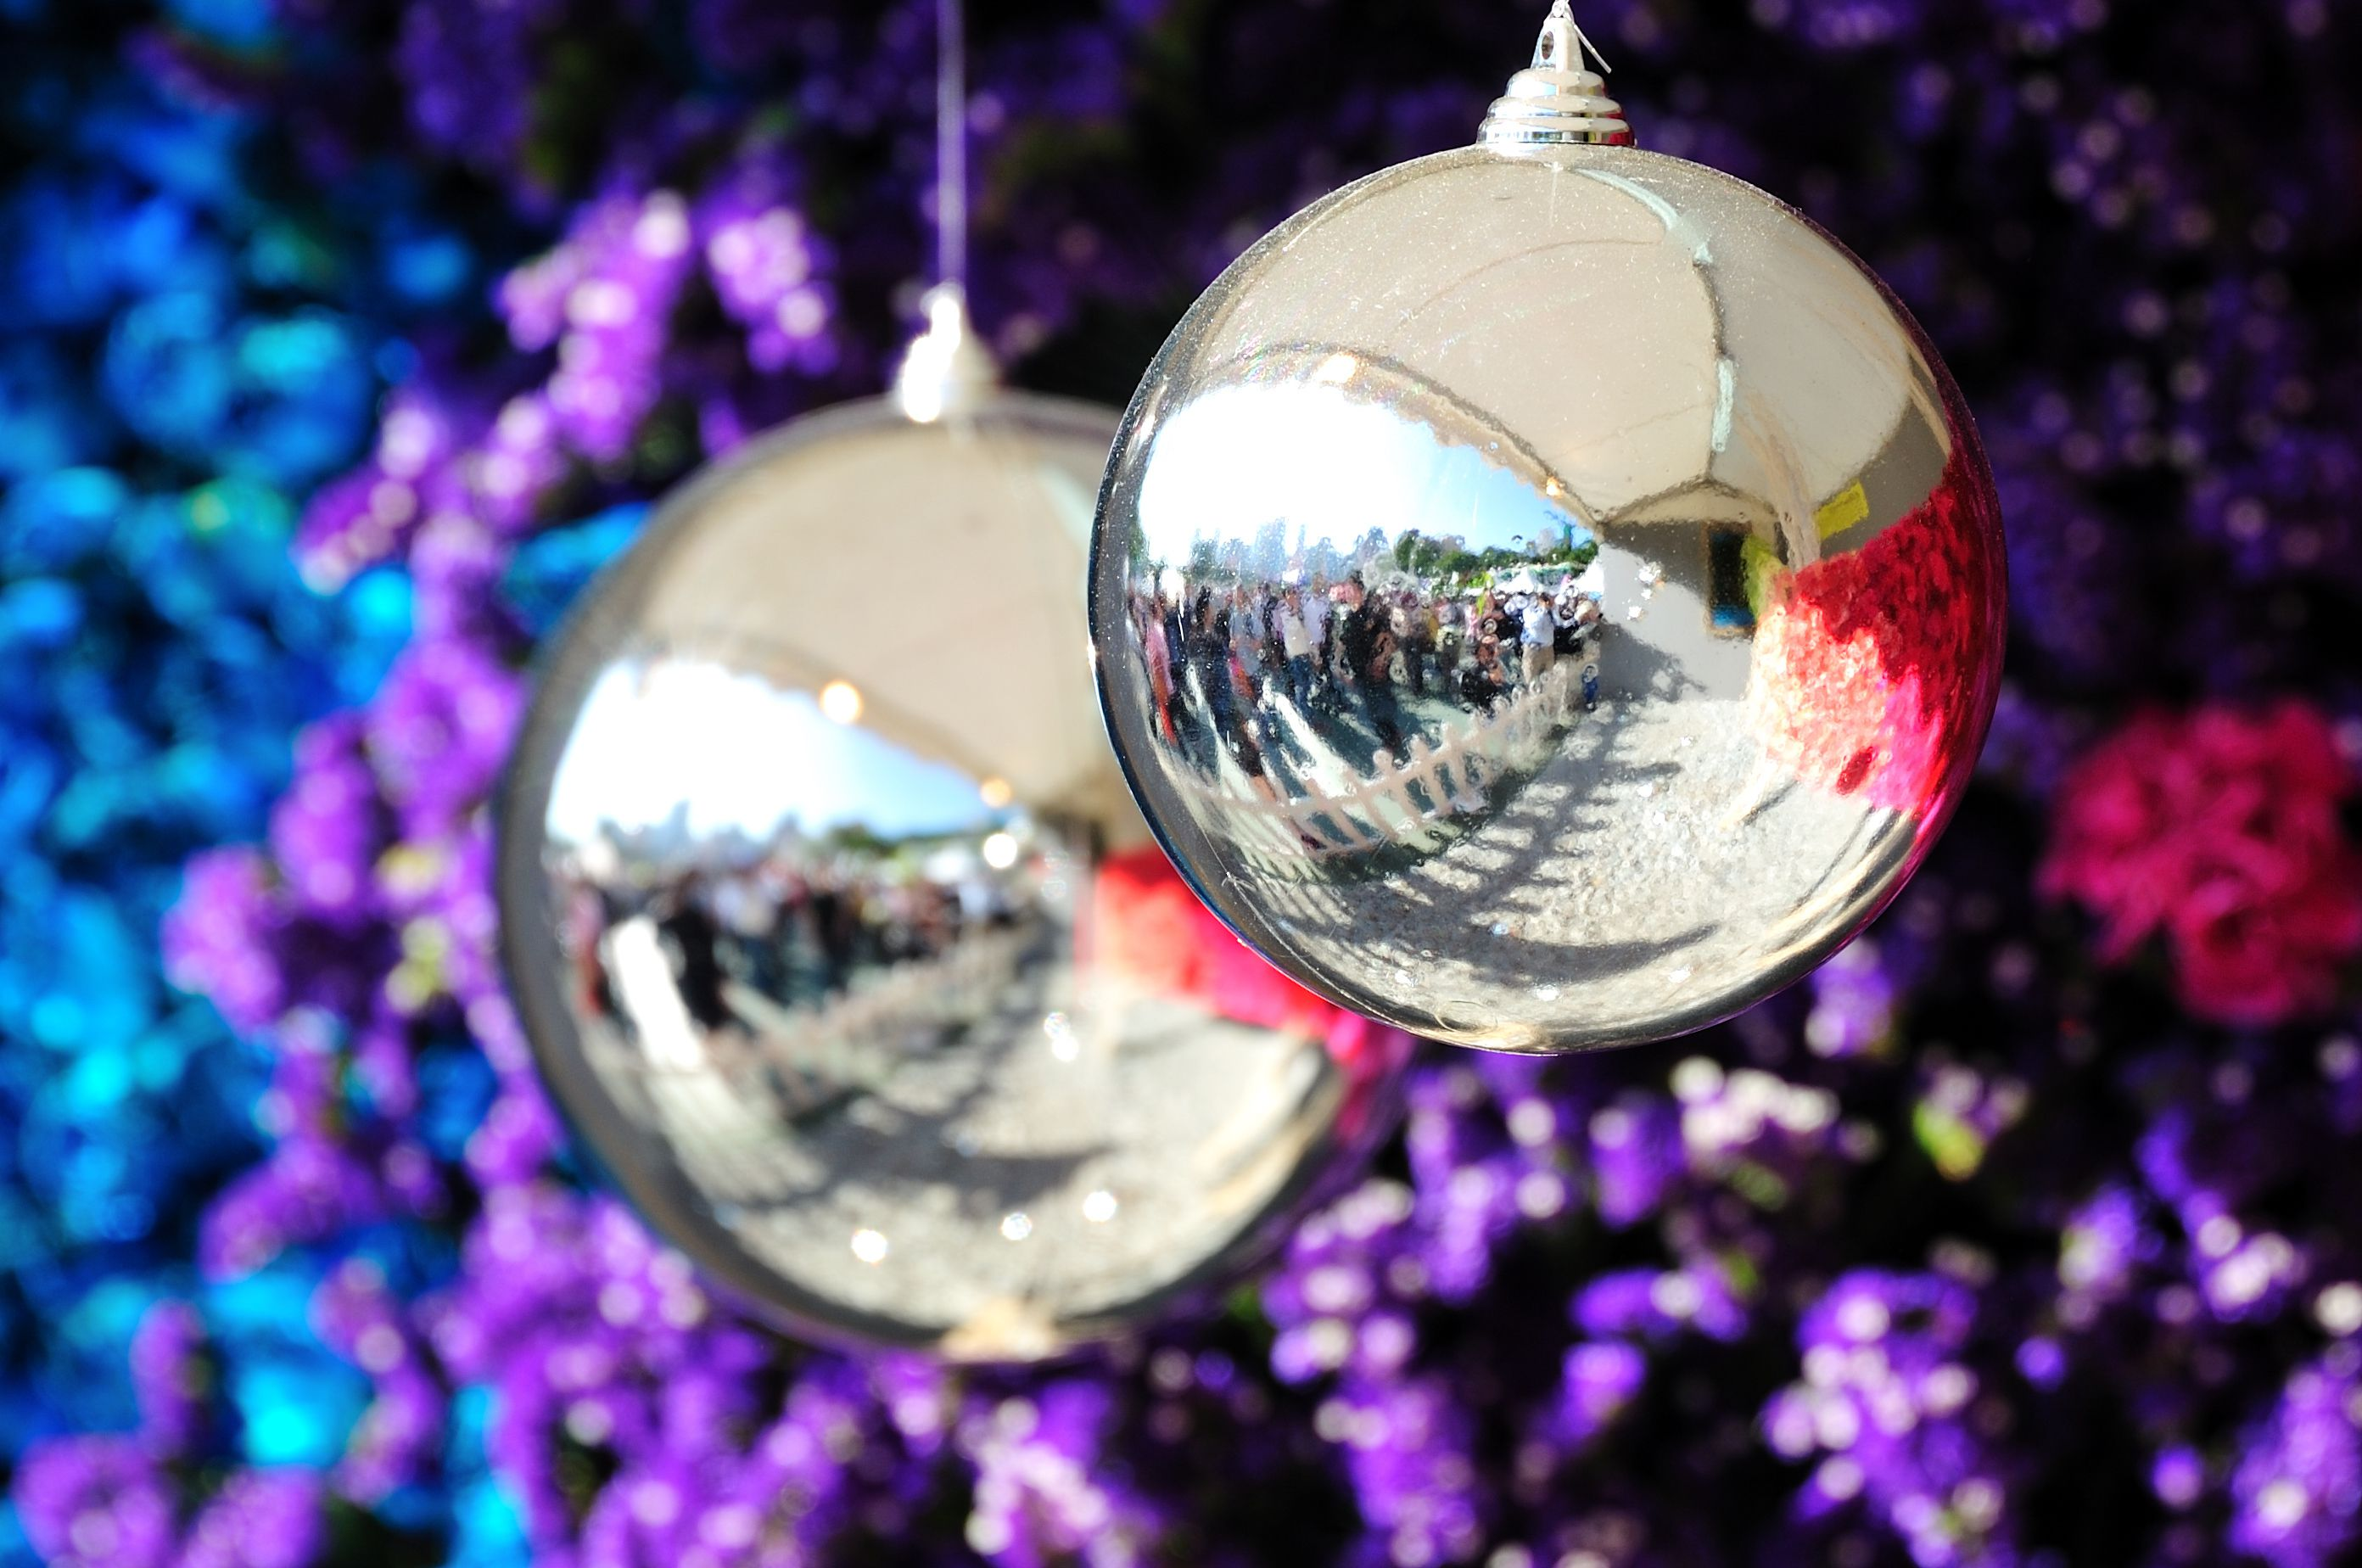 Silver Ornaments: A Holiday Chemistry Project